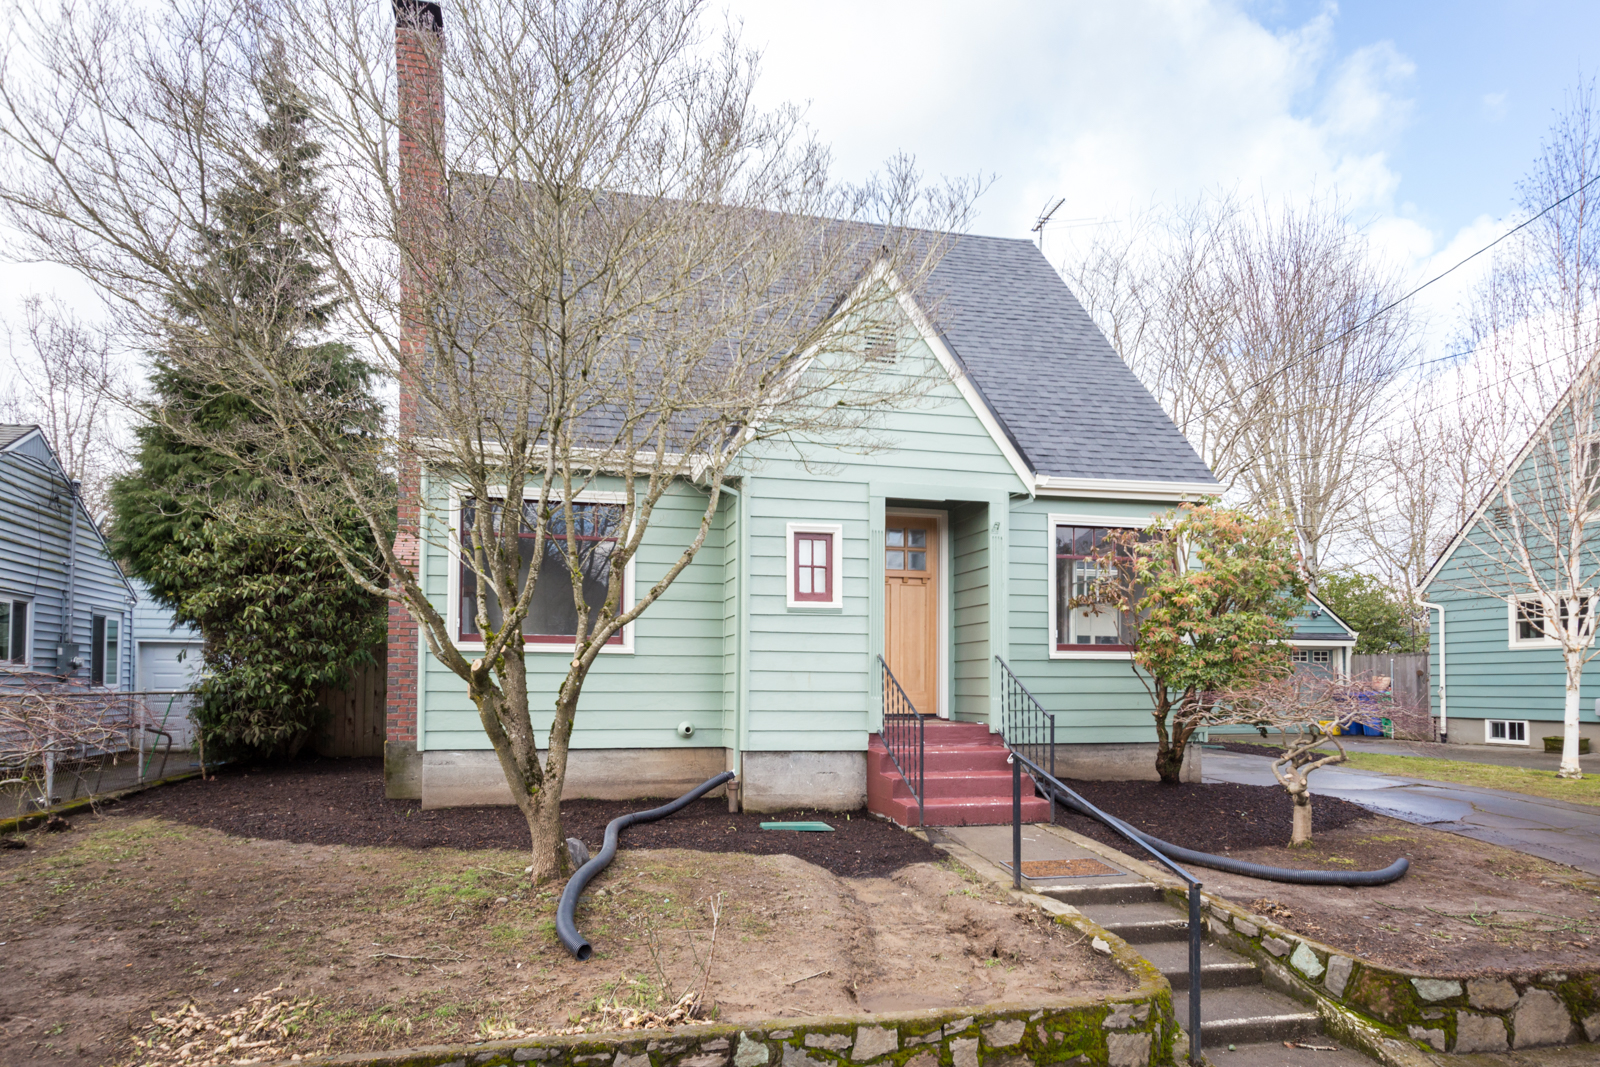 Portland, Oregon claimed 9th spot in Zillow's hottest residential real estate markets for 2018. There have been signs of the market slowing down over the last several months, however, if Zillow's prediction comes true, real estate could continue to see strong growth in the Portland area.